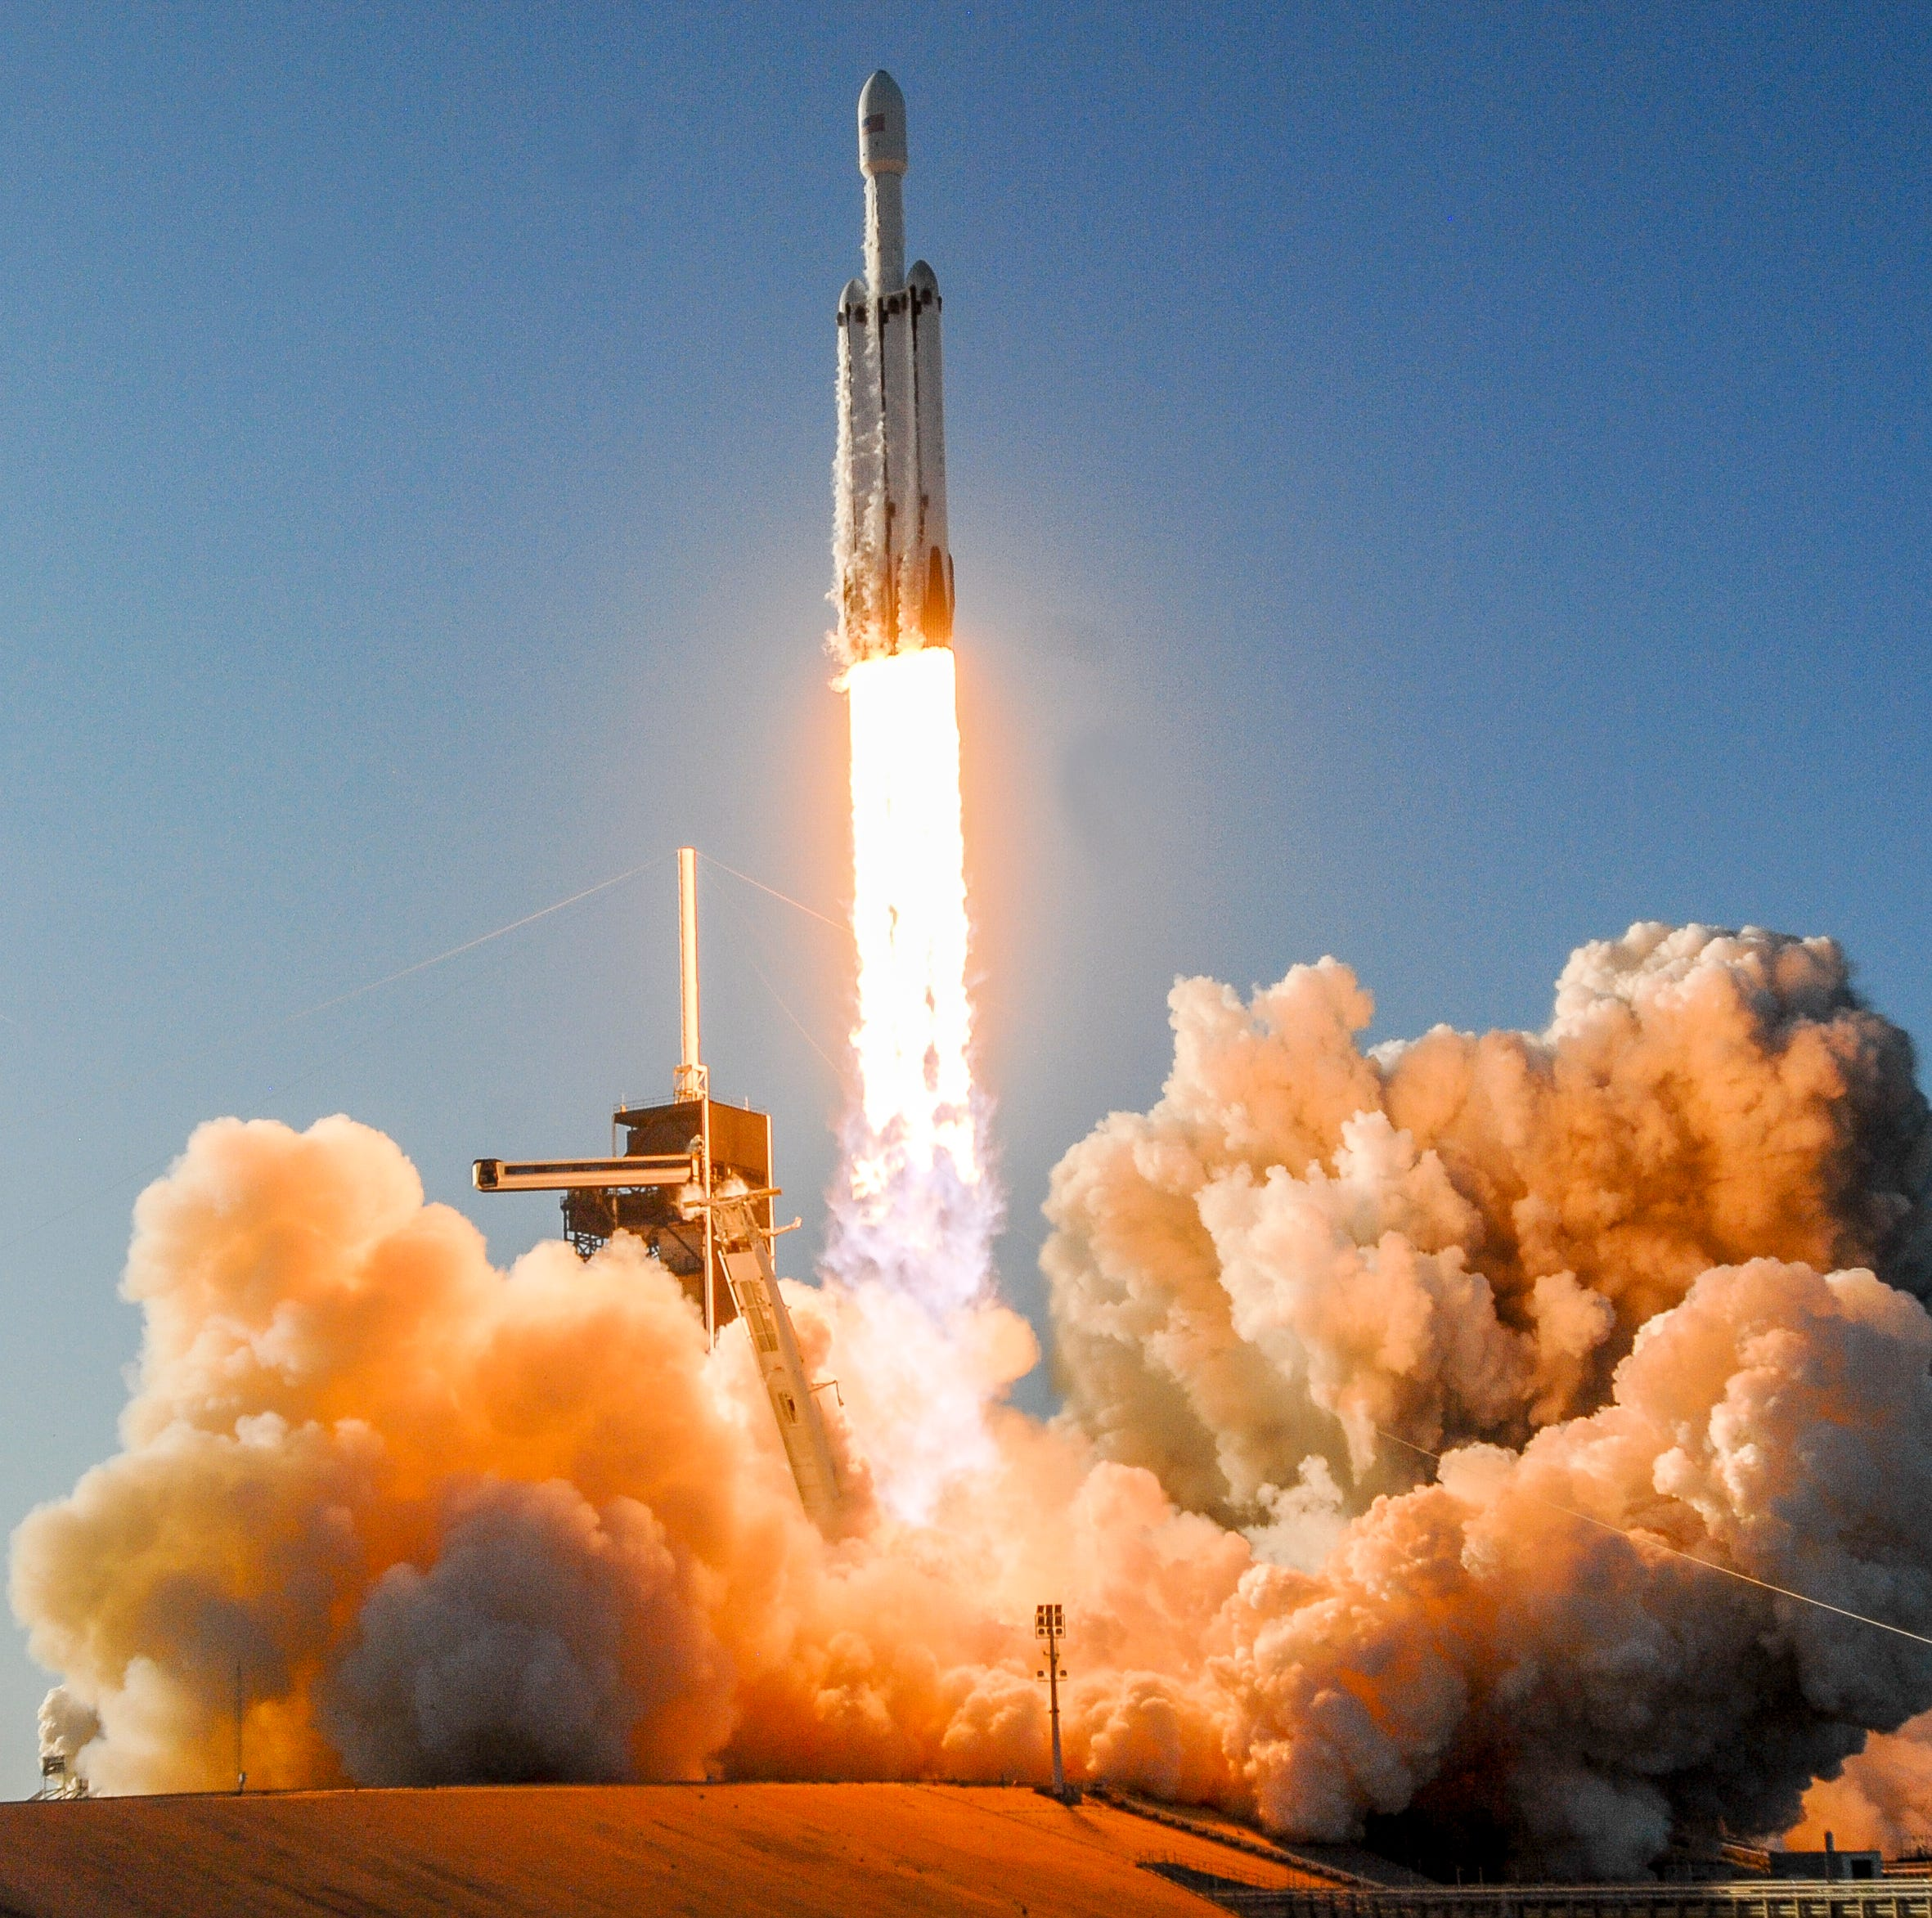 Best space photos: SpaceX Falcon Heavy launch from Kennedy Space Center